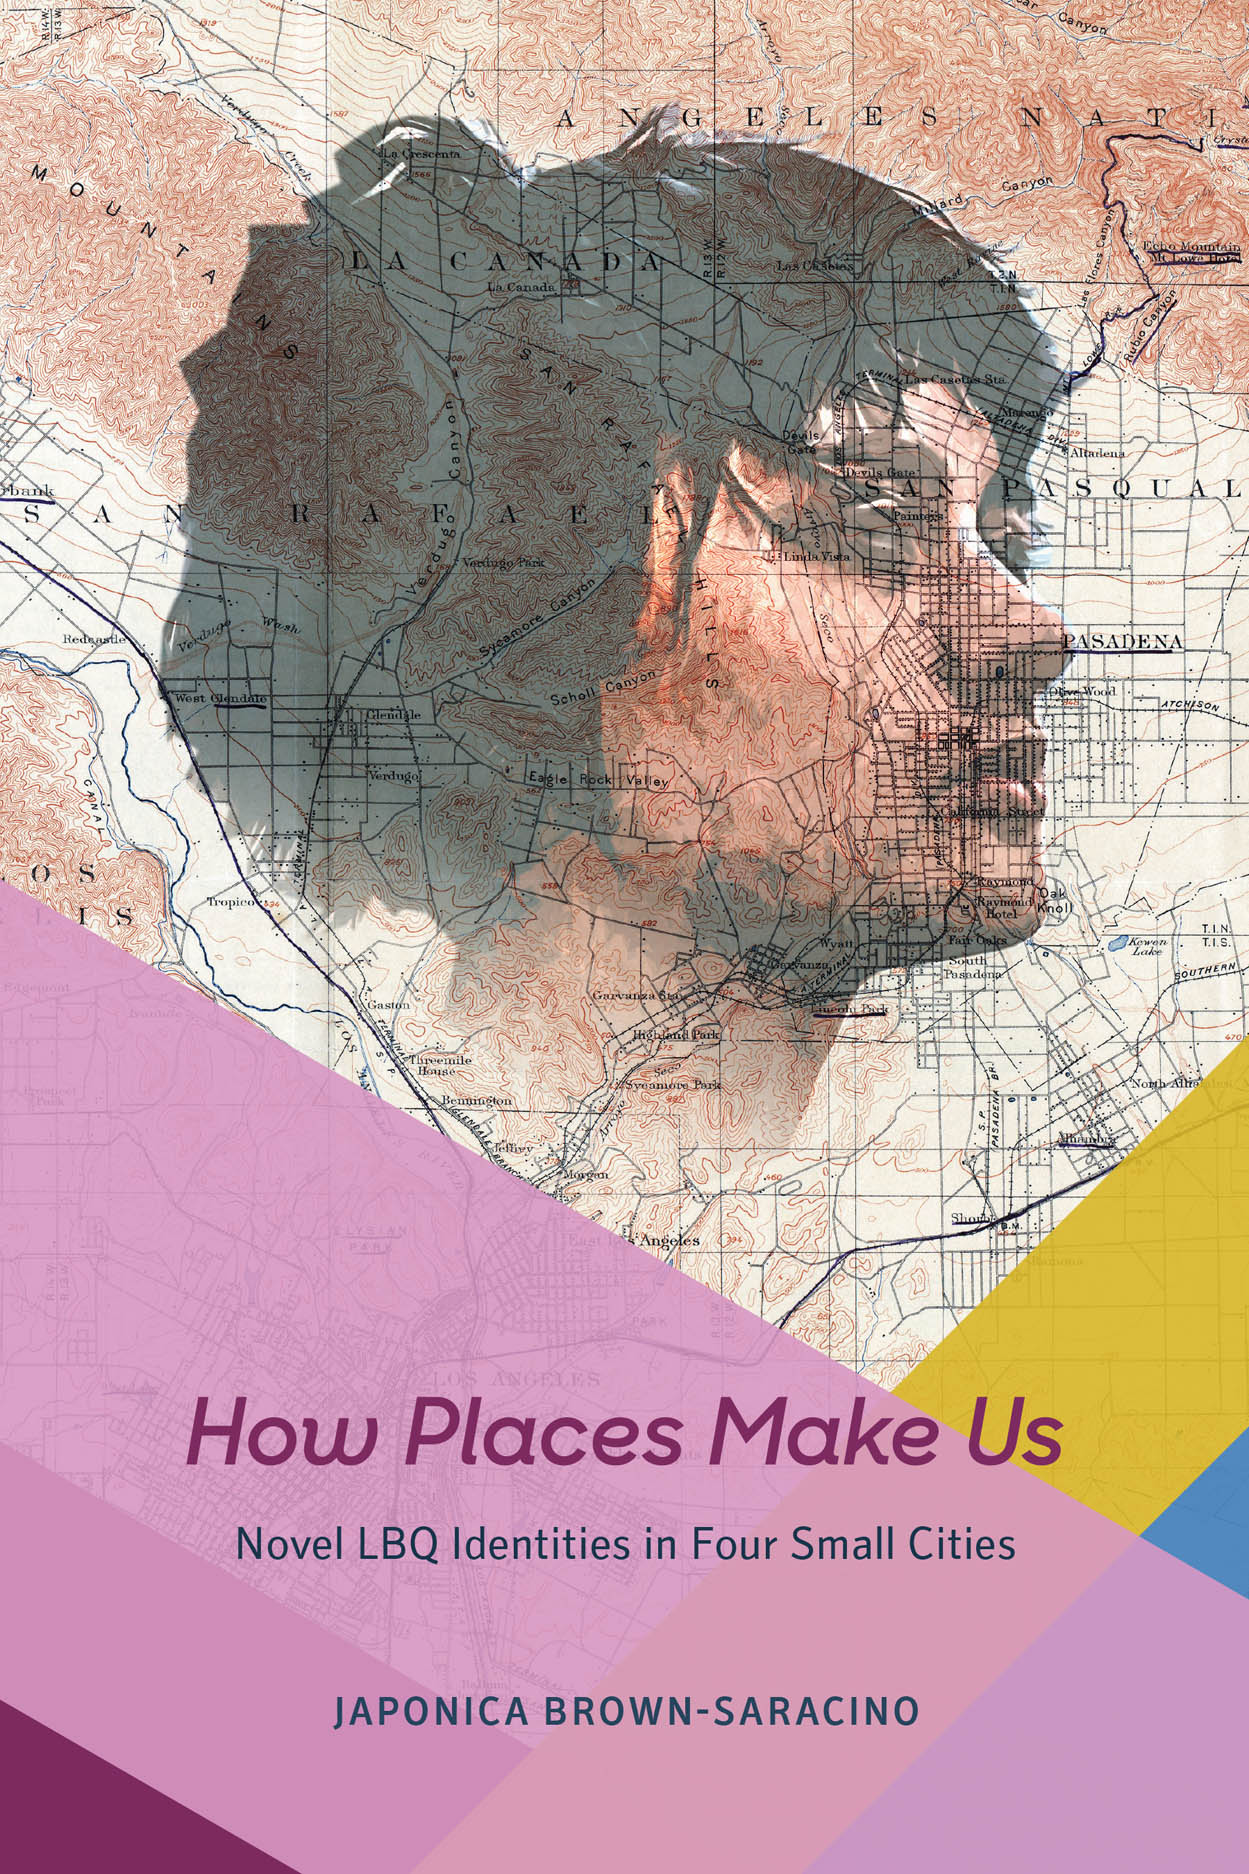 How Places Make Us: Novel LBQ Identities in Four Small Cities